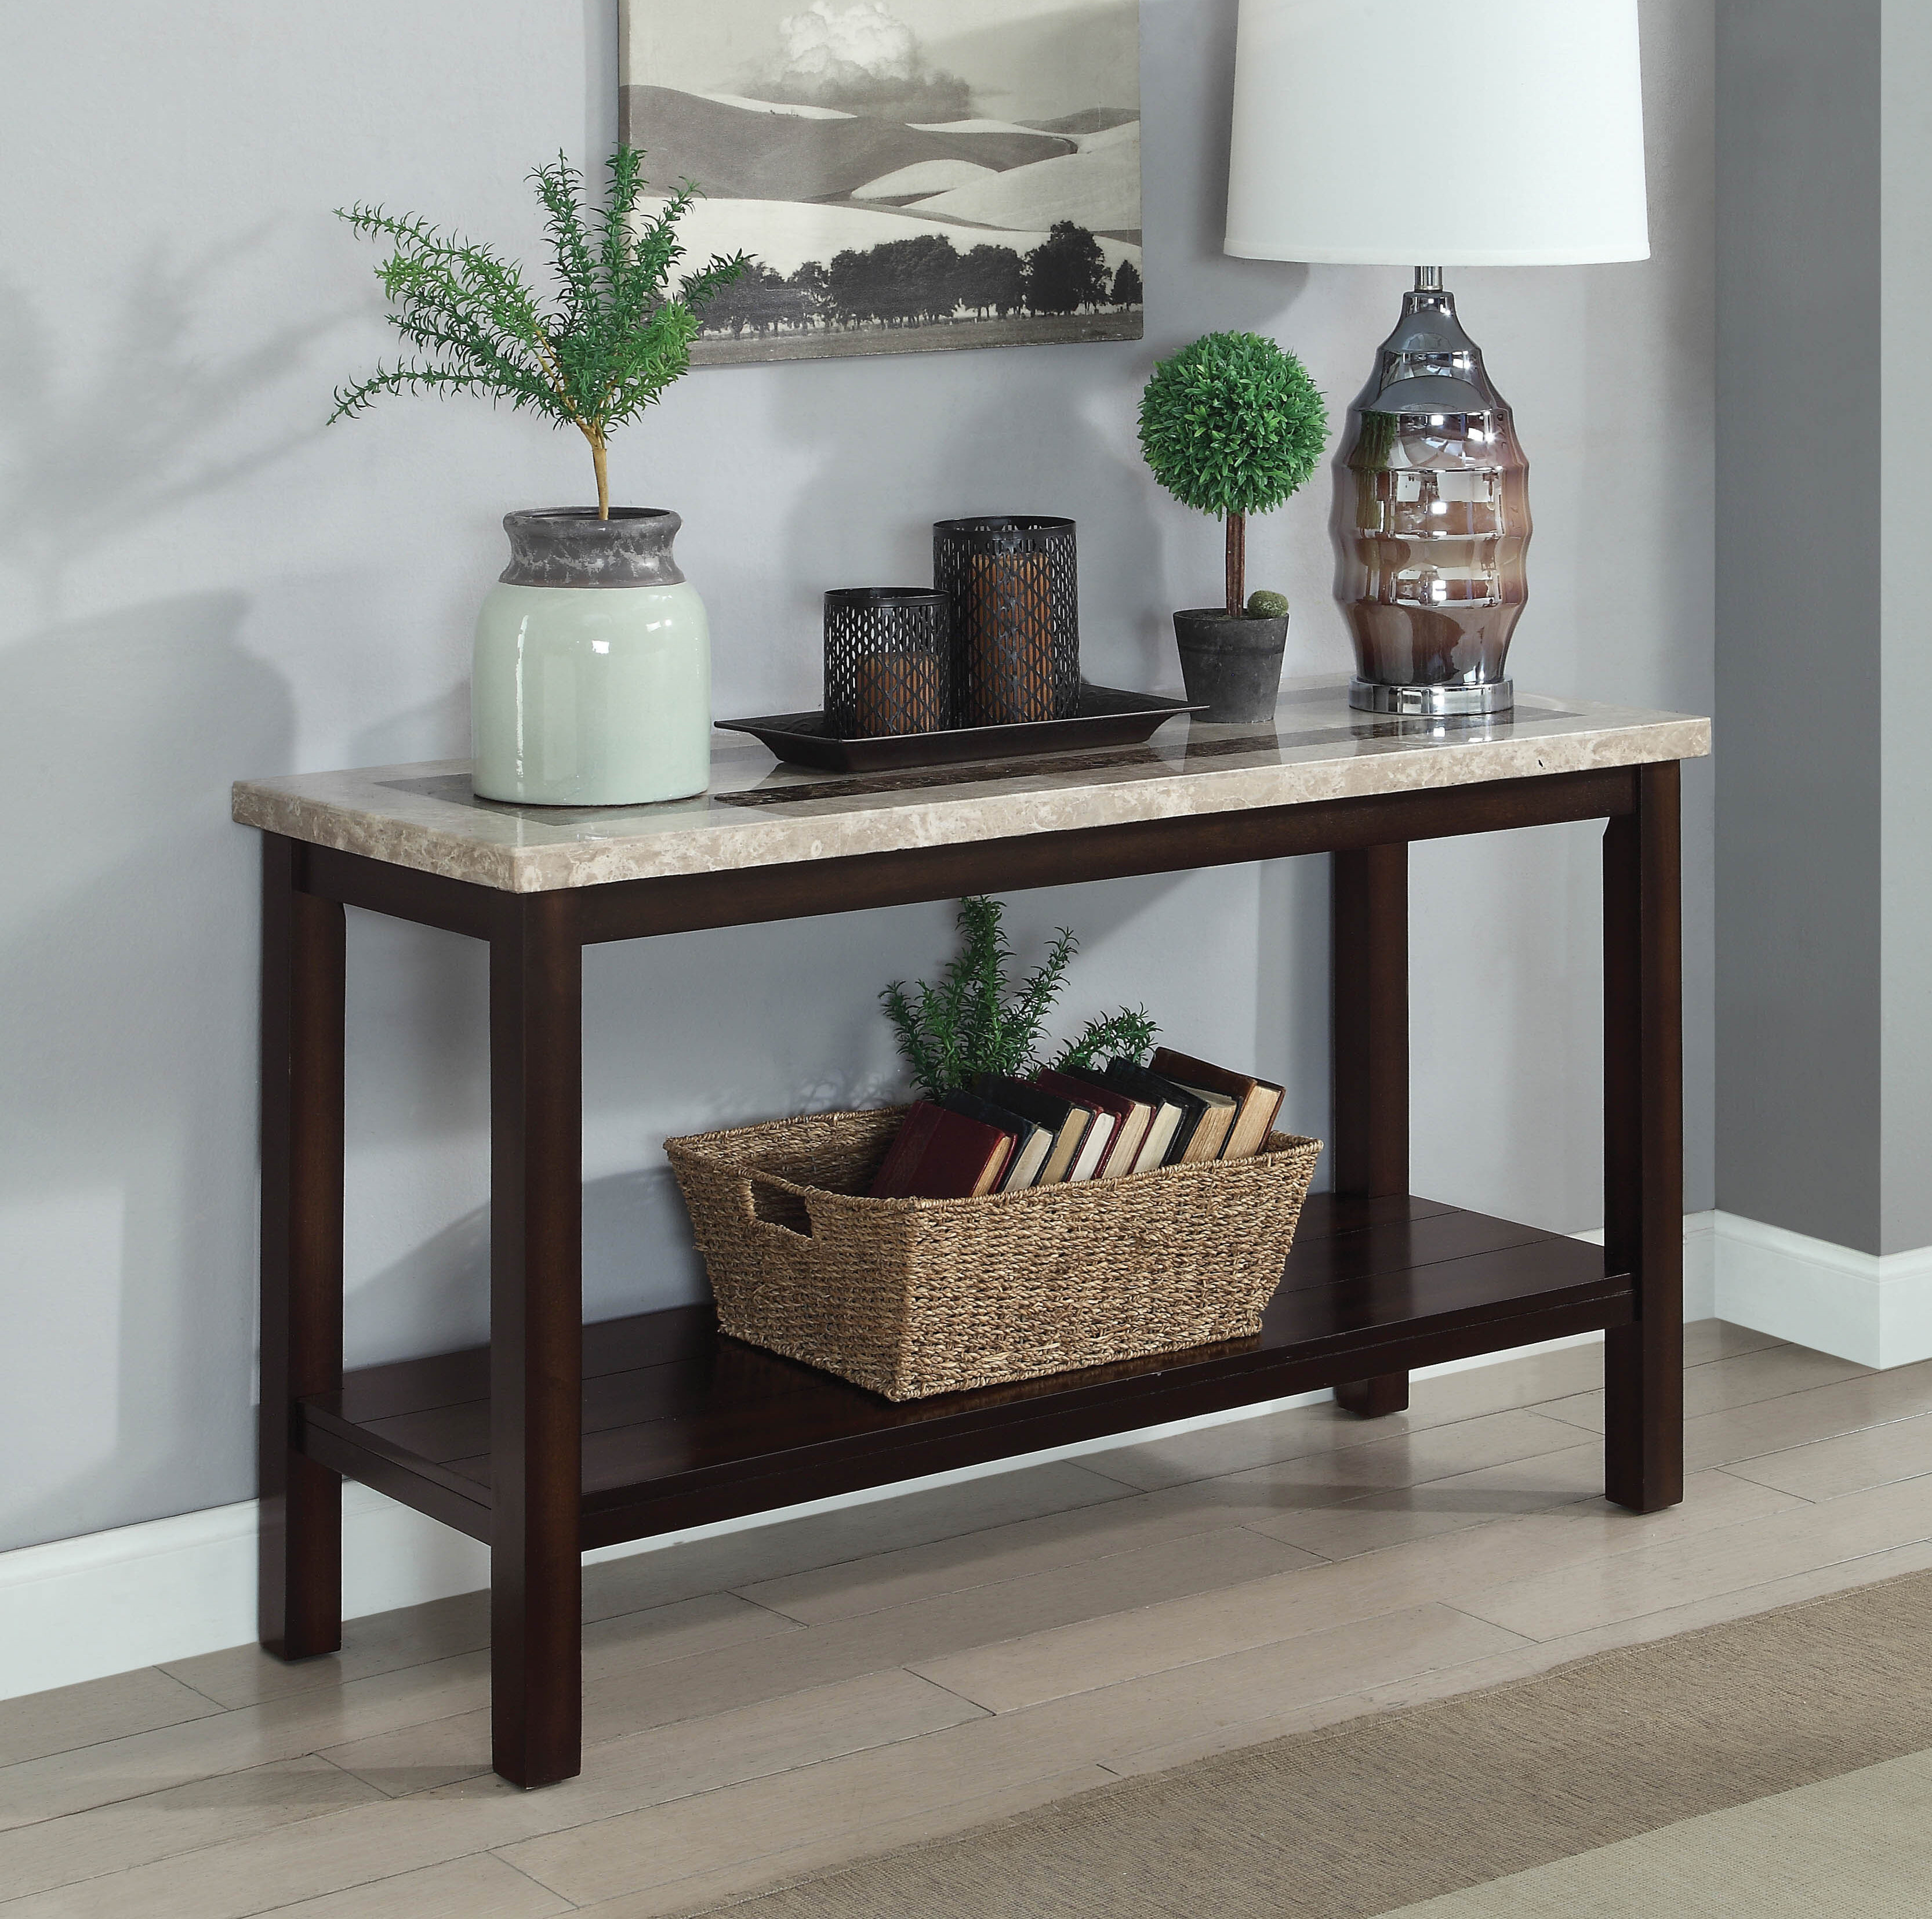 Peachy Chantal 48 Solid Wood Console Table Ibusinesslaw Wood Chair Design Ideas Ibusinesslaworg